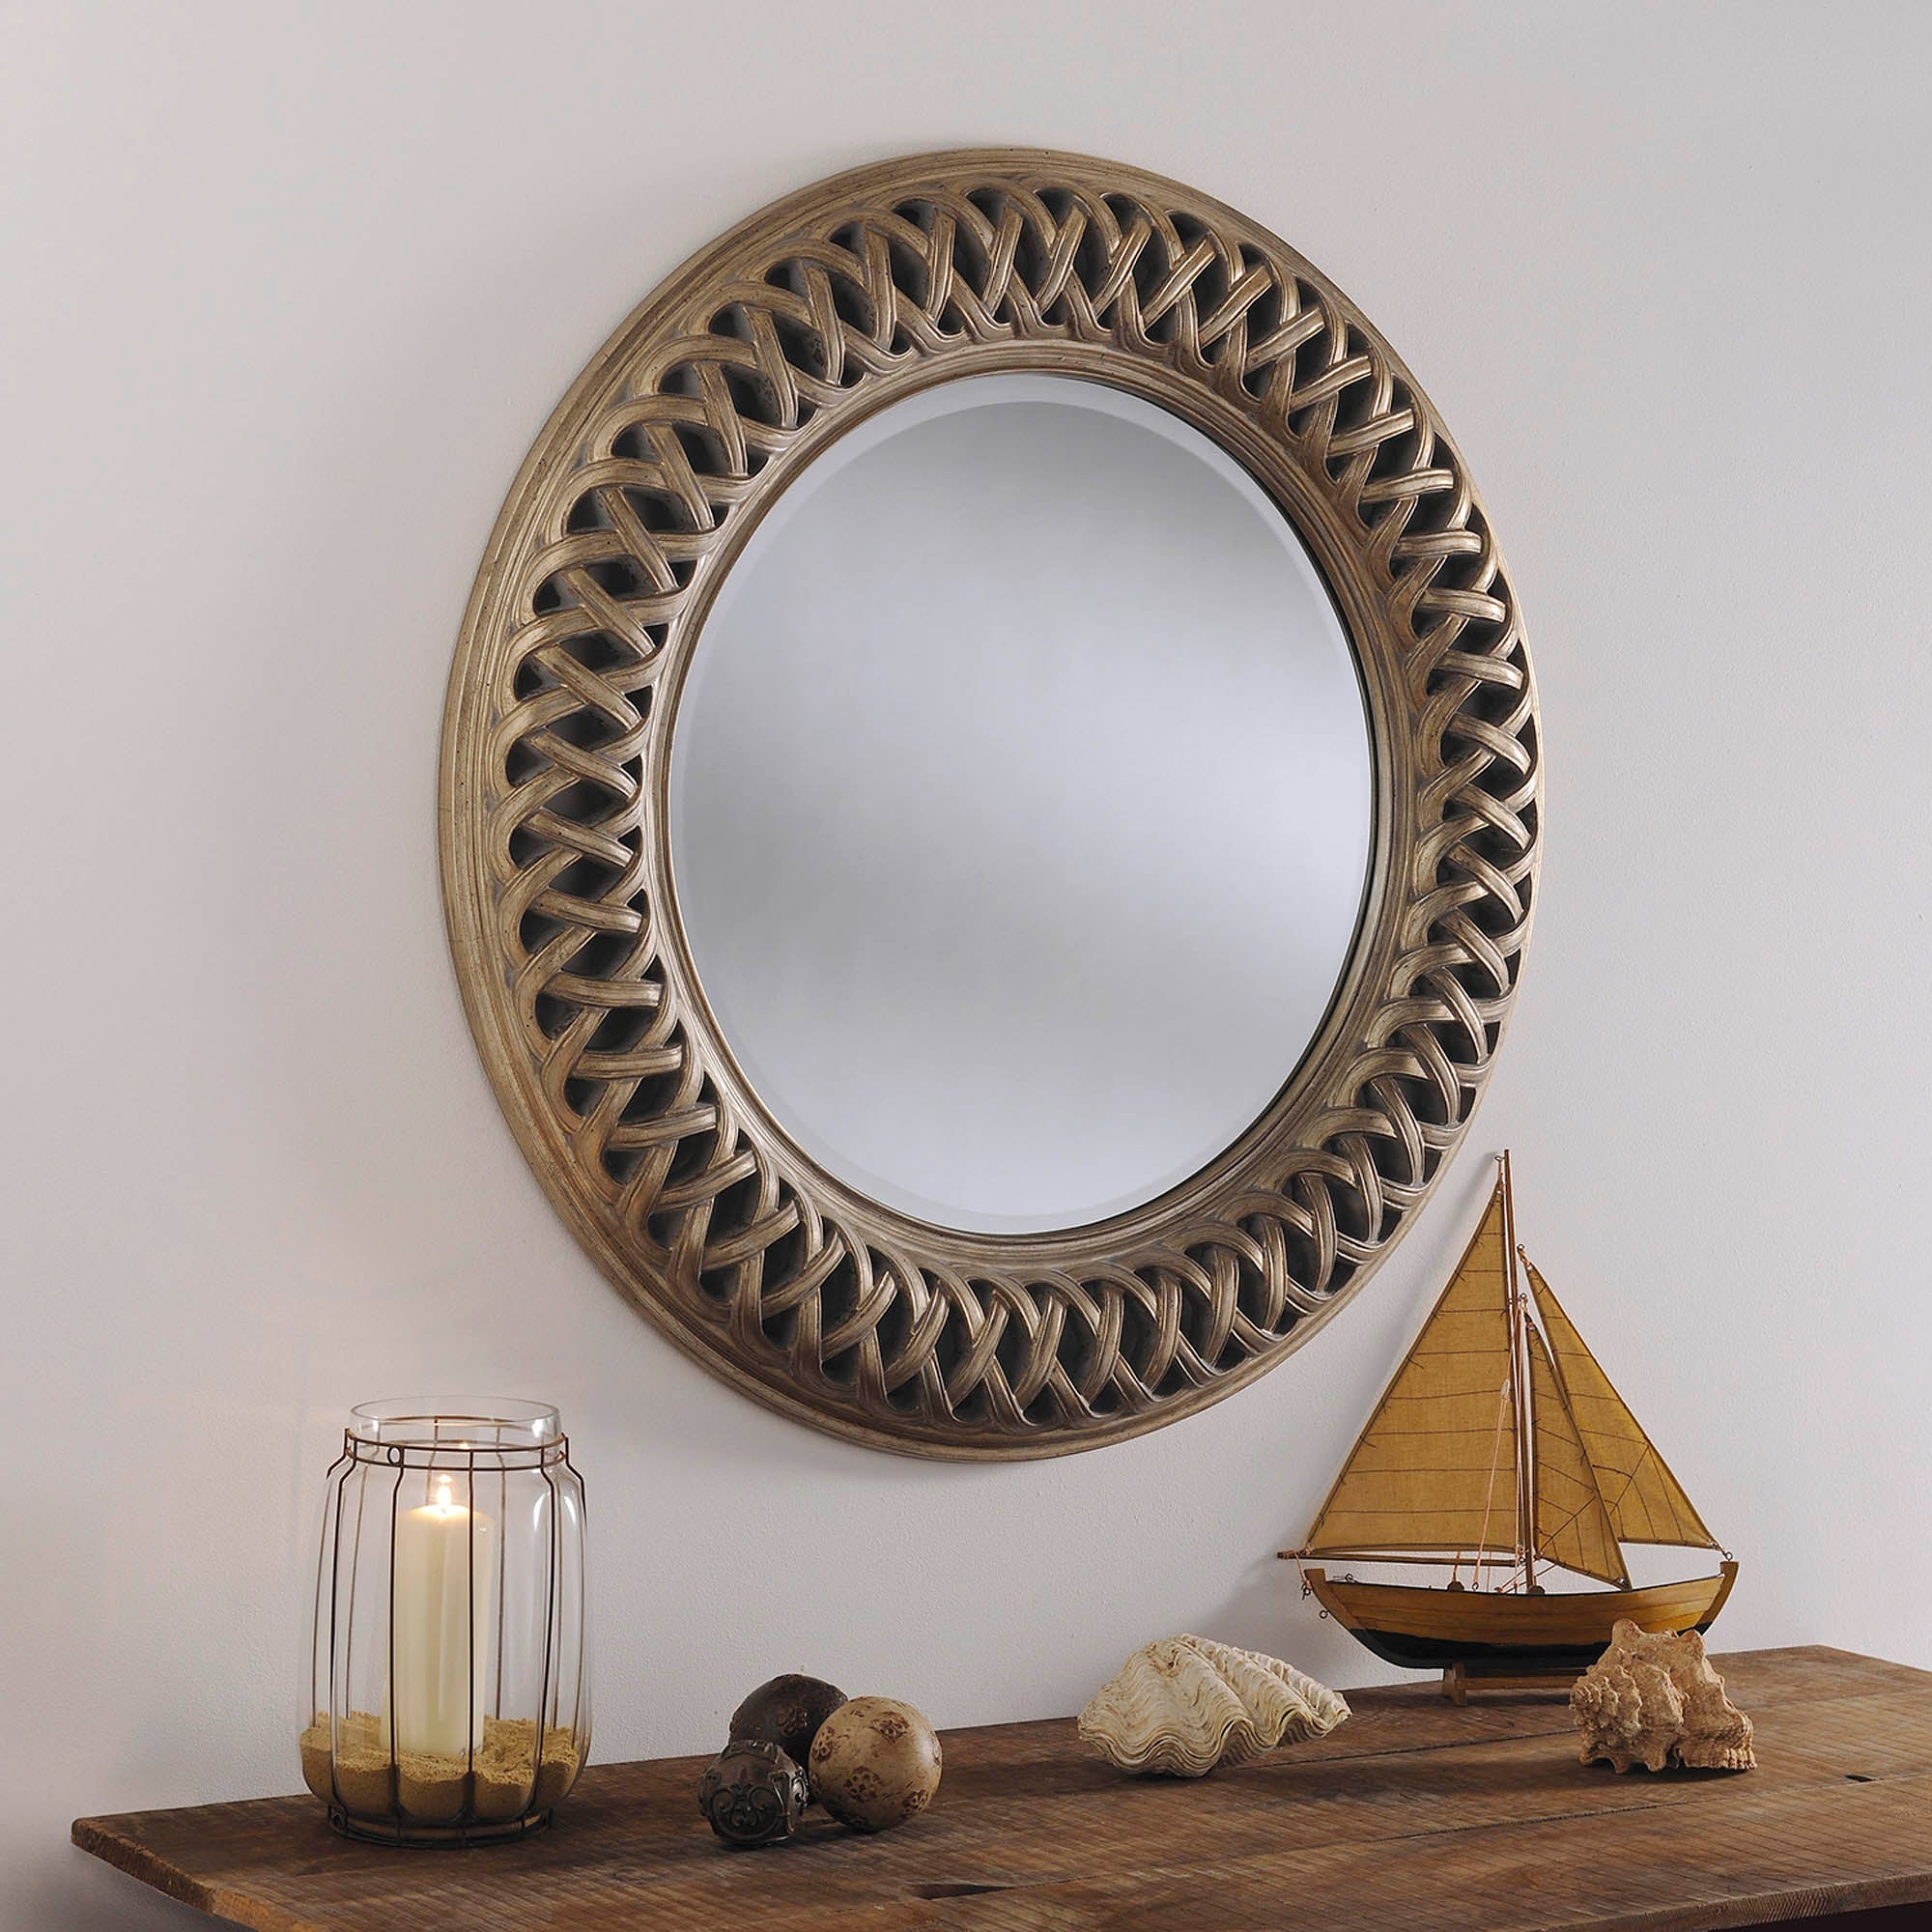 Photo of Manor antique silver wall mirror gold